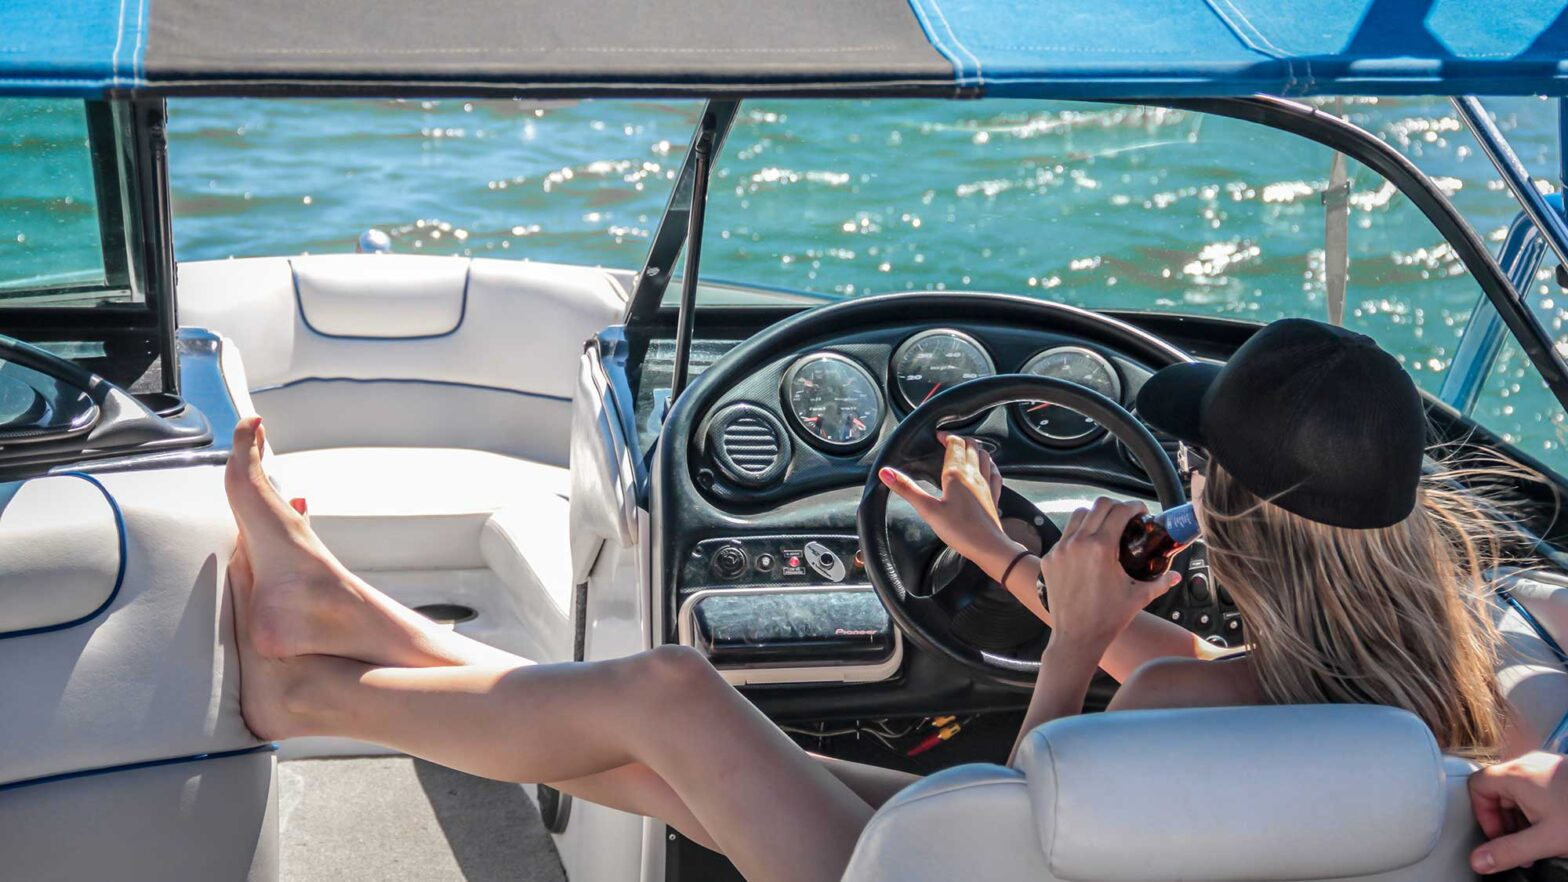 Boating License Requirements and Laws